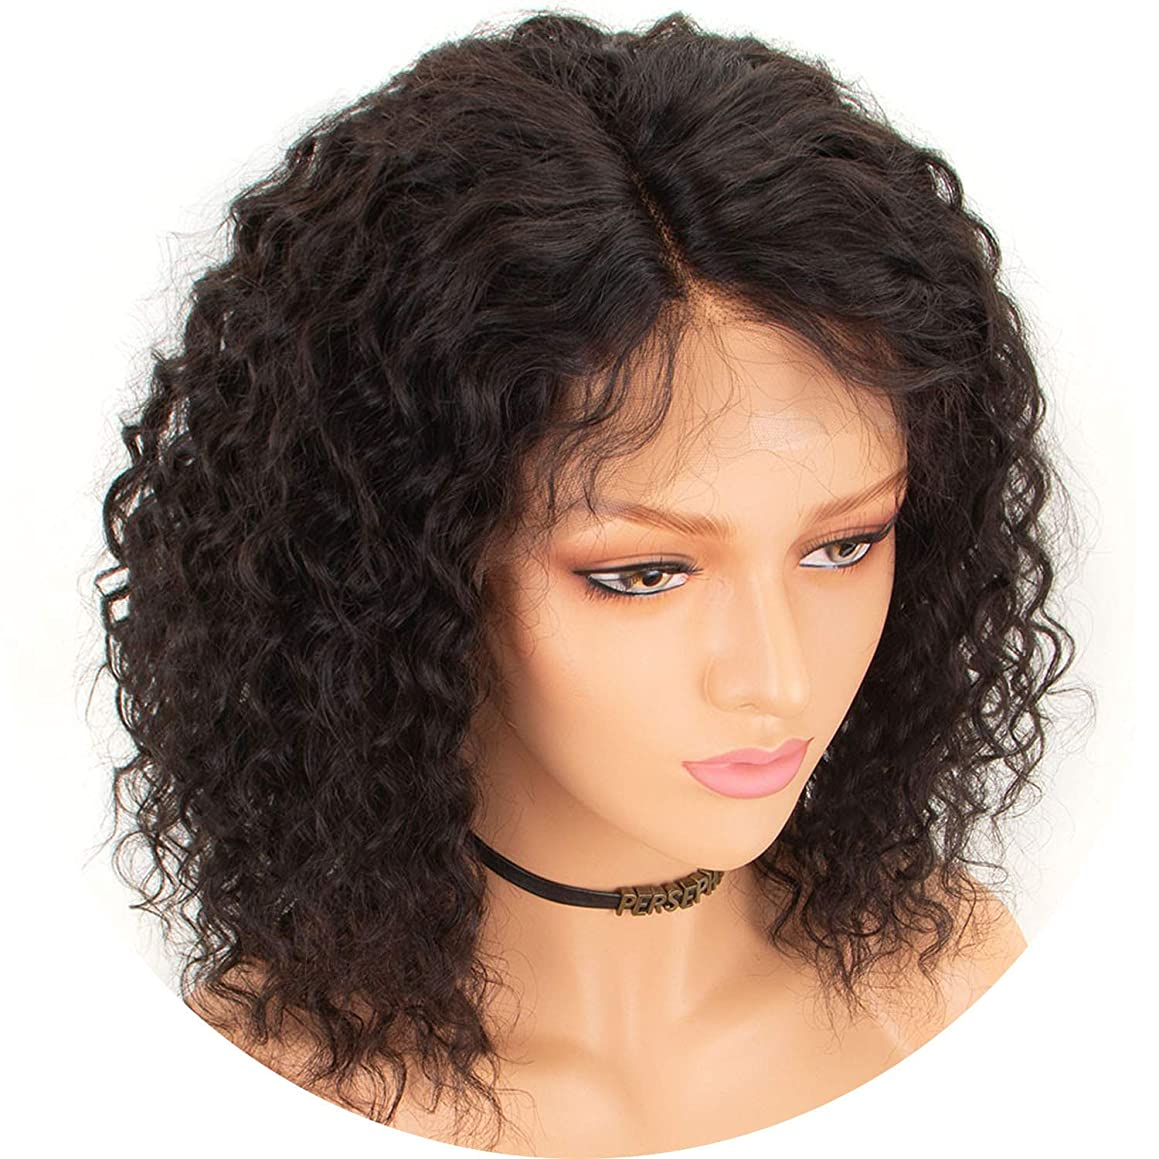 100% Human Hair Curly 360 Lace Frontal Wigs For Black Women Brazilian Remy Hair 360 Lace Wigs Full End With Baby Hair crack of dawn,20inches,130%,Natural Color